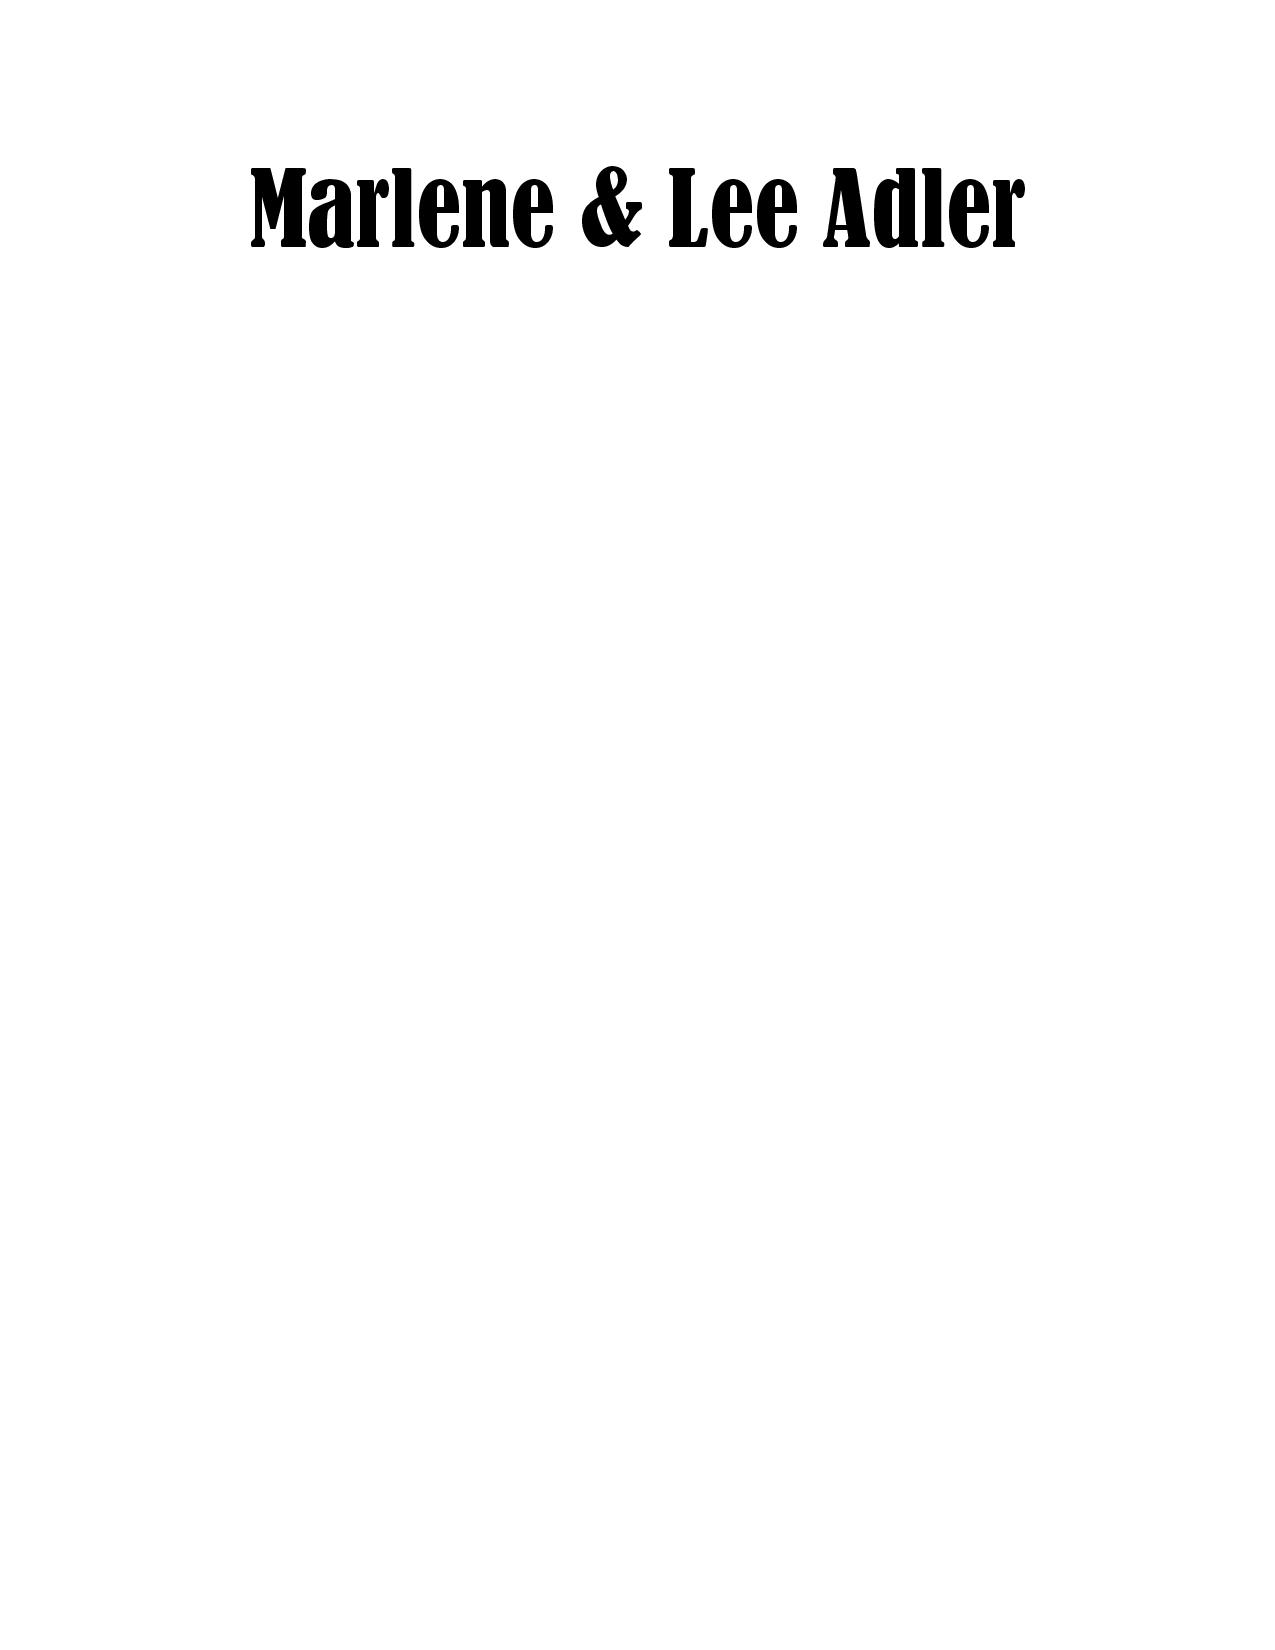 Marlene and Lee Adler-page-001